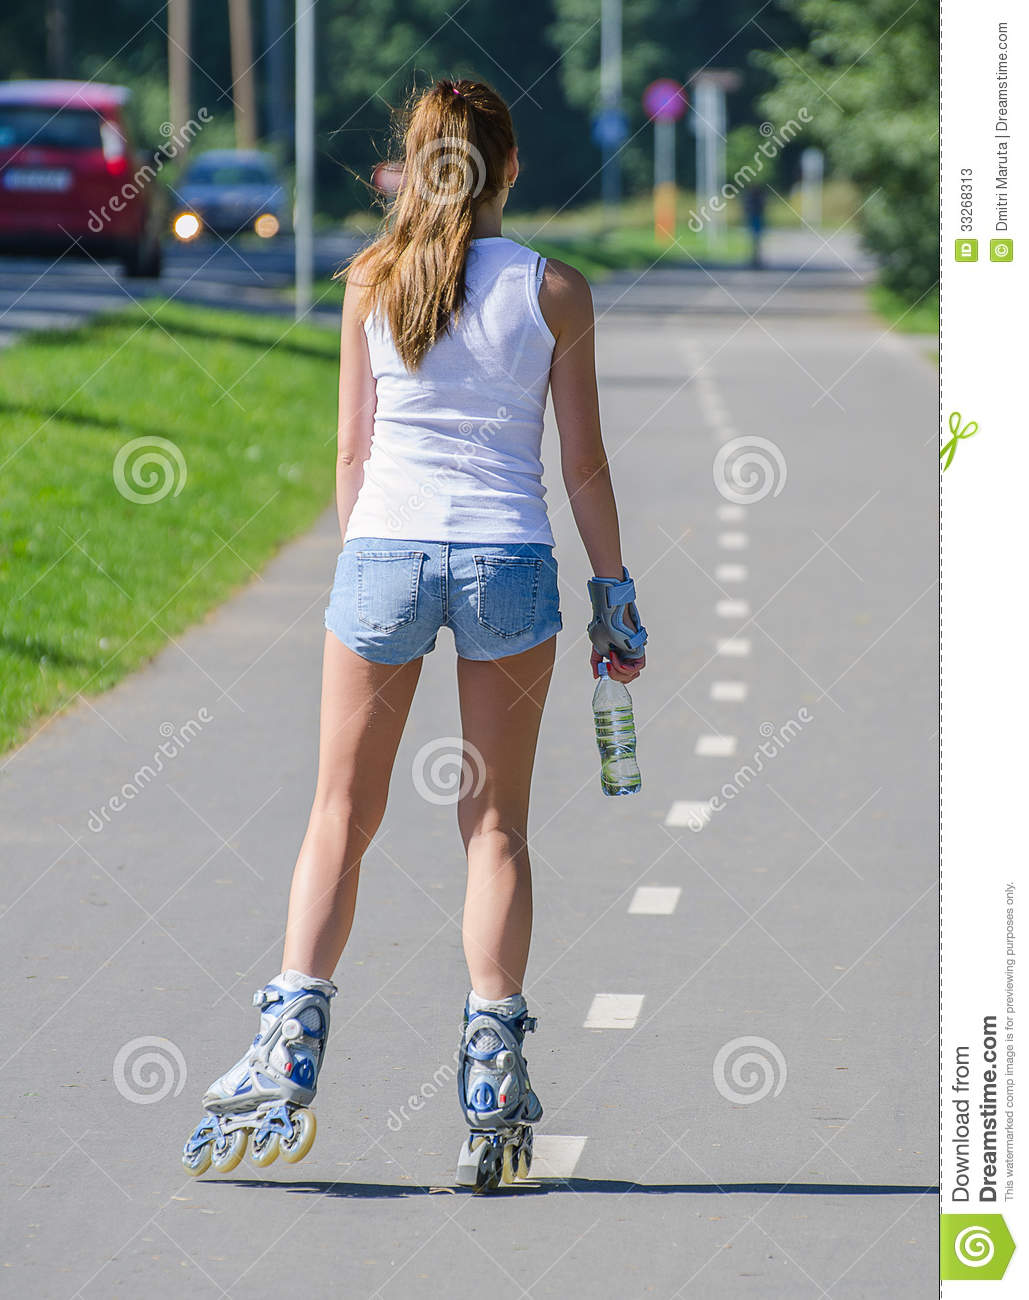 woman ride rollerblades in the park back view stock